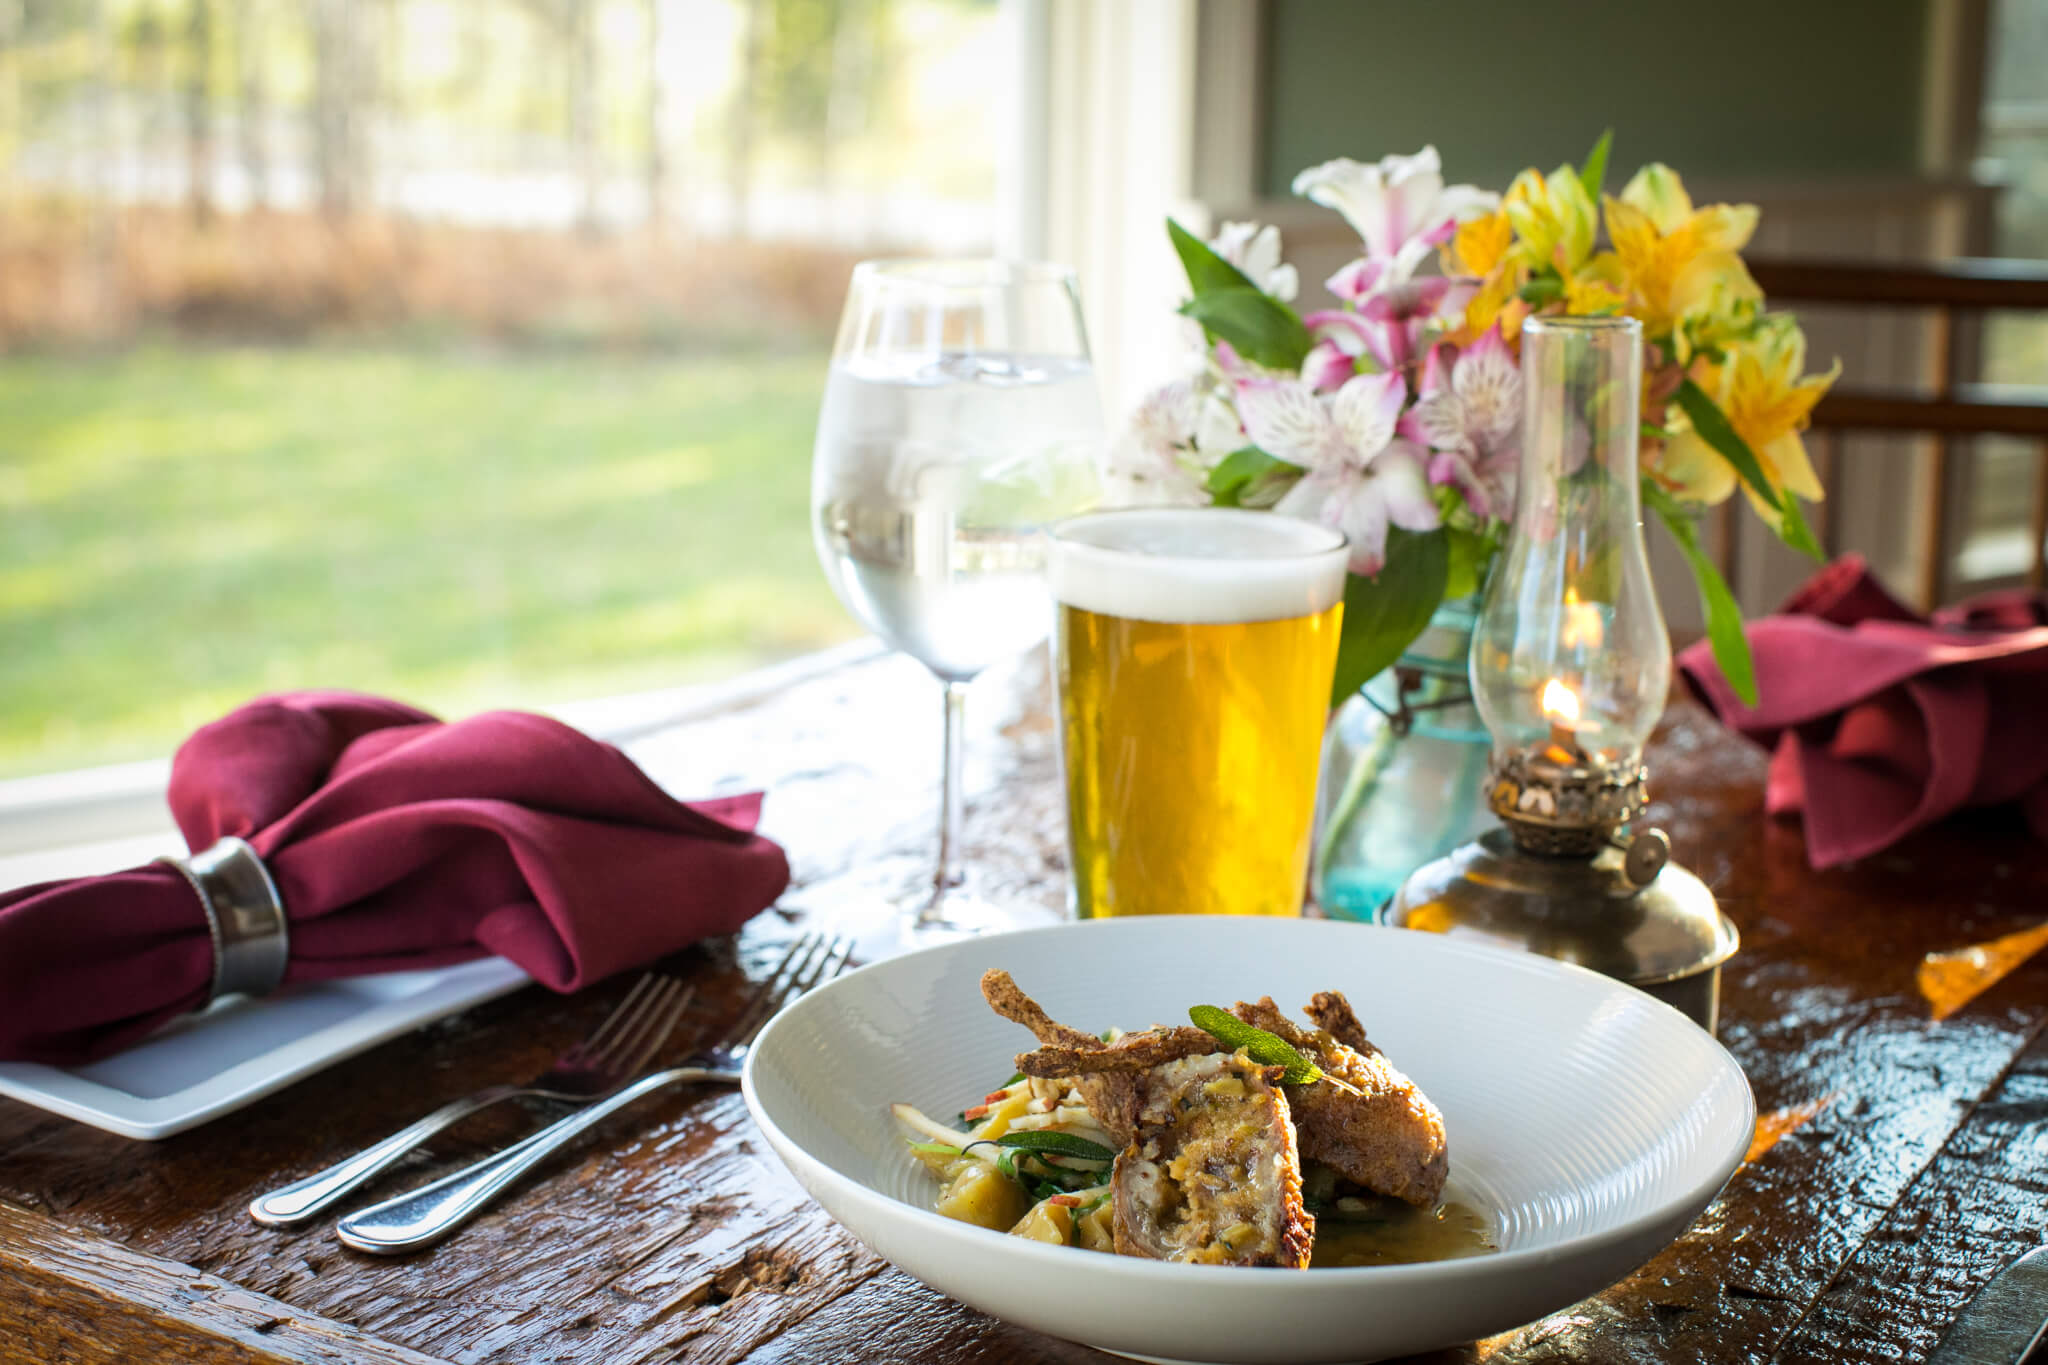 Plated Red Clover Restaurant meal with local beer and flowers. Window overlooking the lawn behind dinning room table.